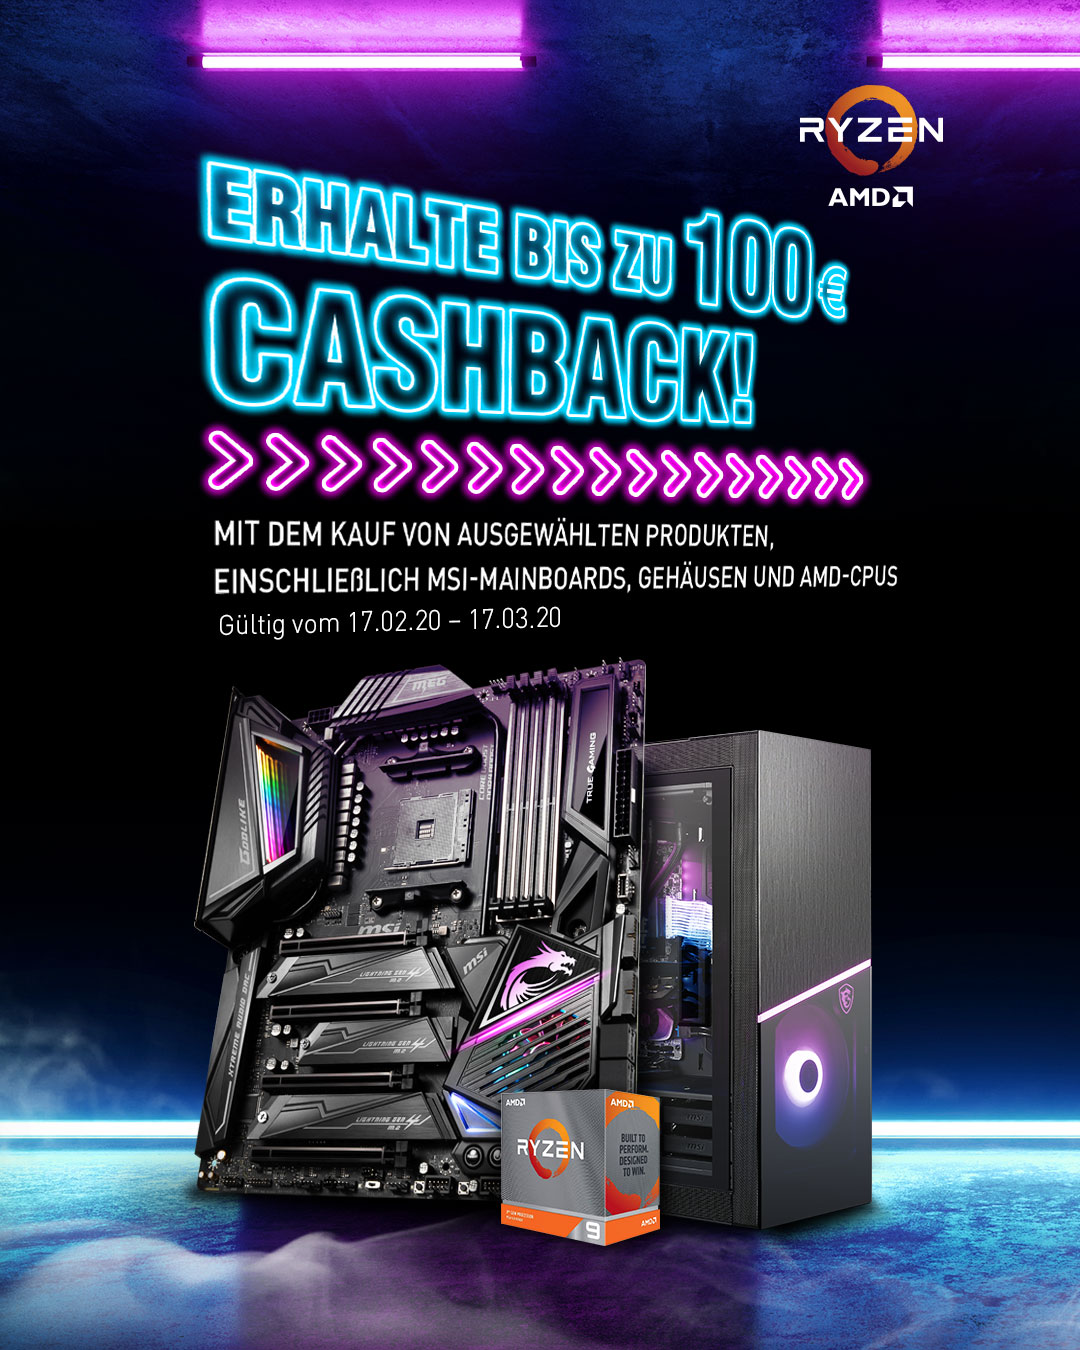 Claim up to €100 cashback